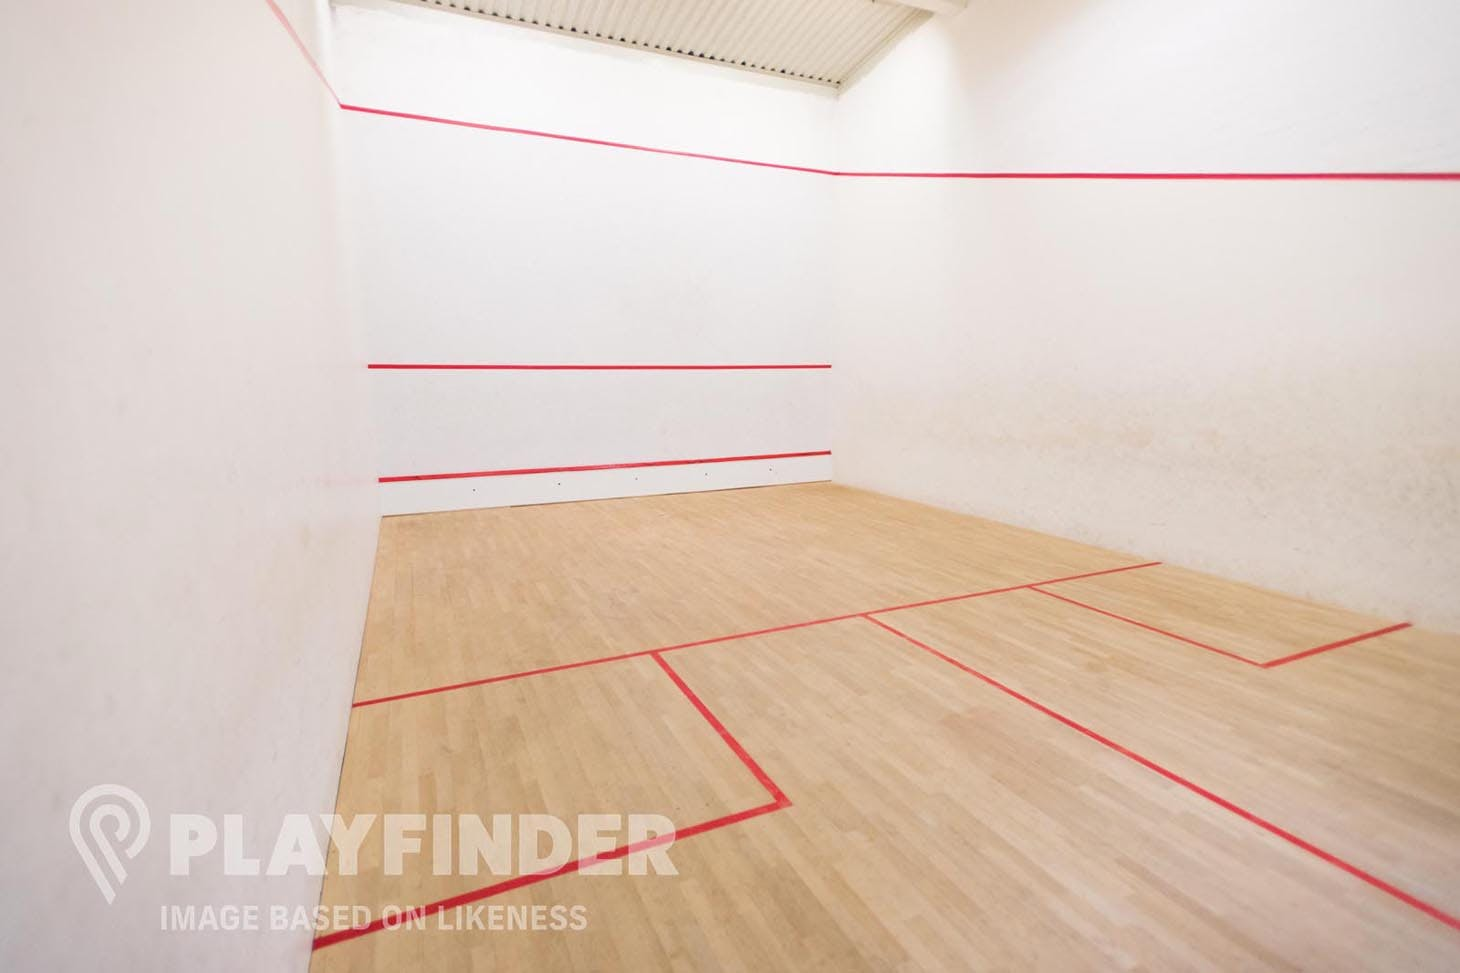 The Sixth Form College, Solihull Indoor squash court